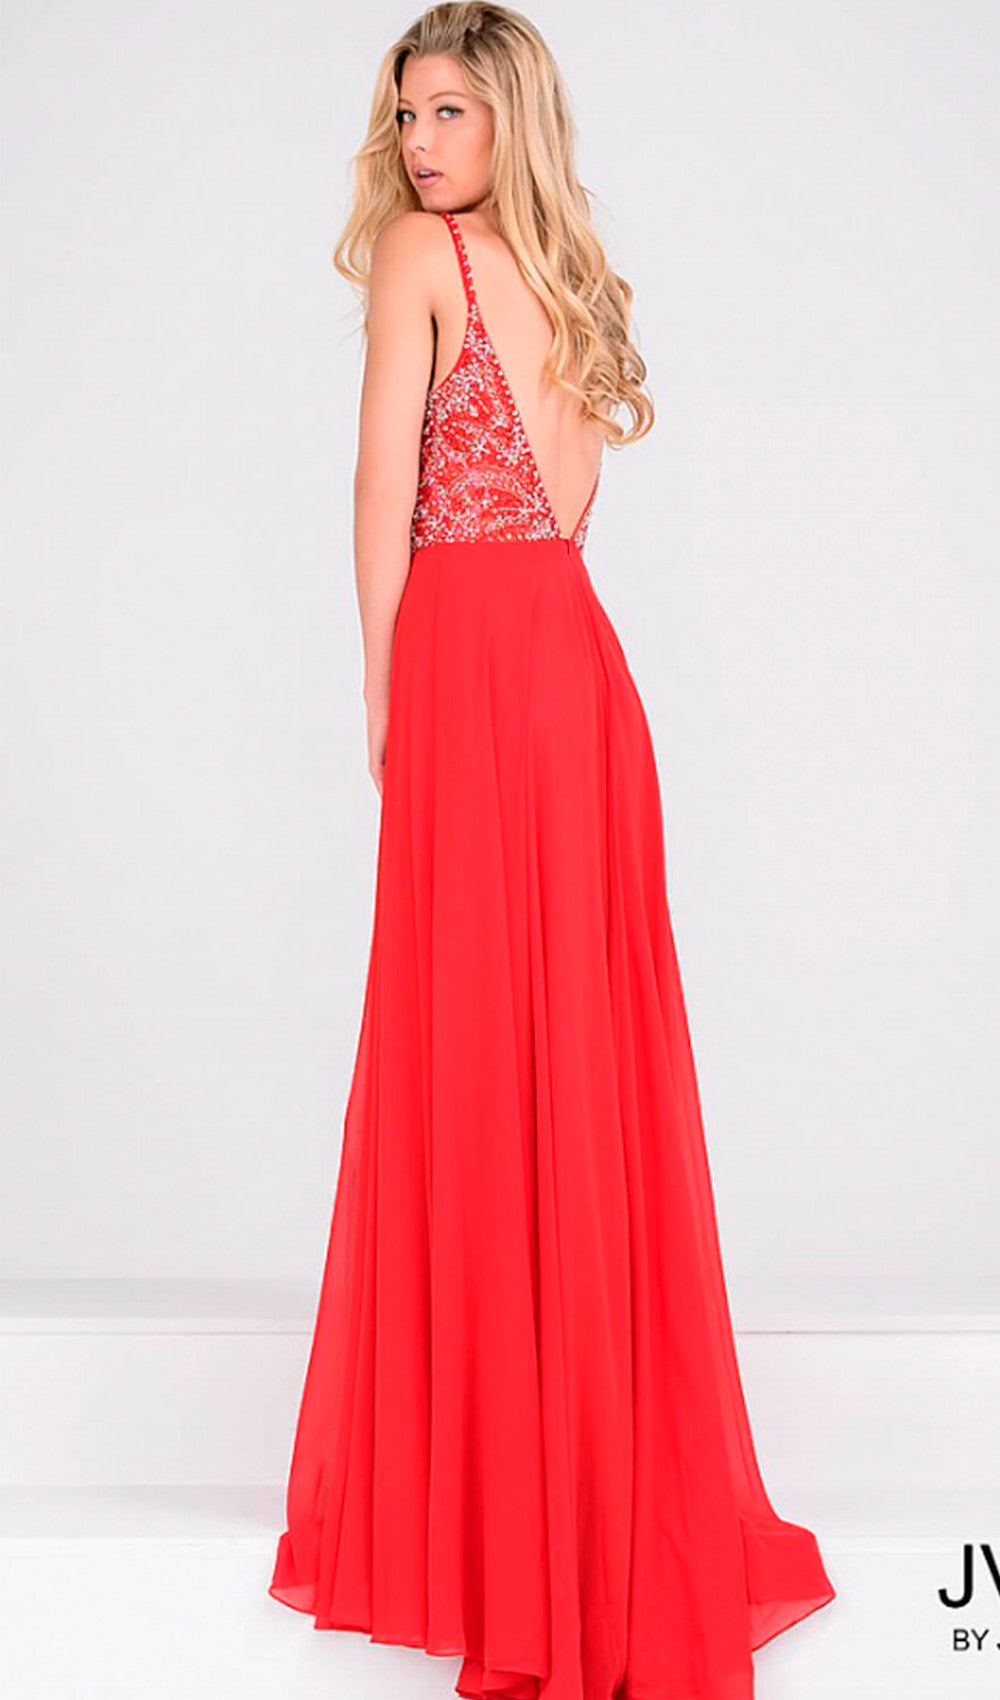 Glamorous Jeweled Spaghetti Strap Prom Dress | Jovani - STYLE JVN33701 | Schaffer's Bridal in Des Moines, Iowa